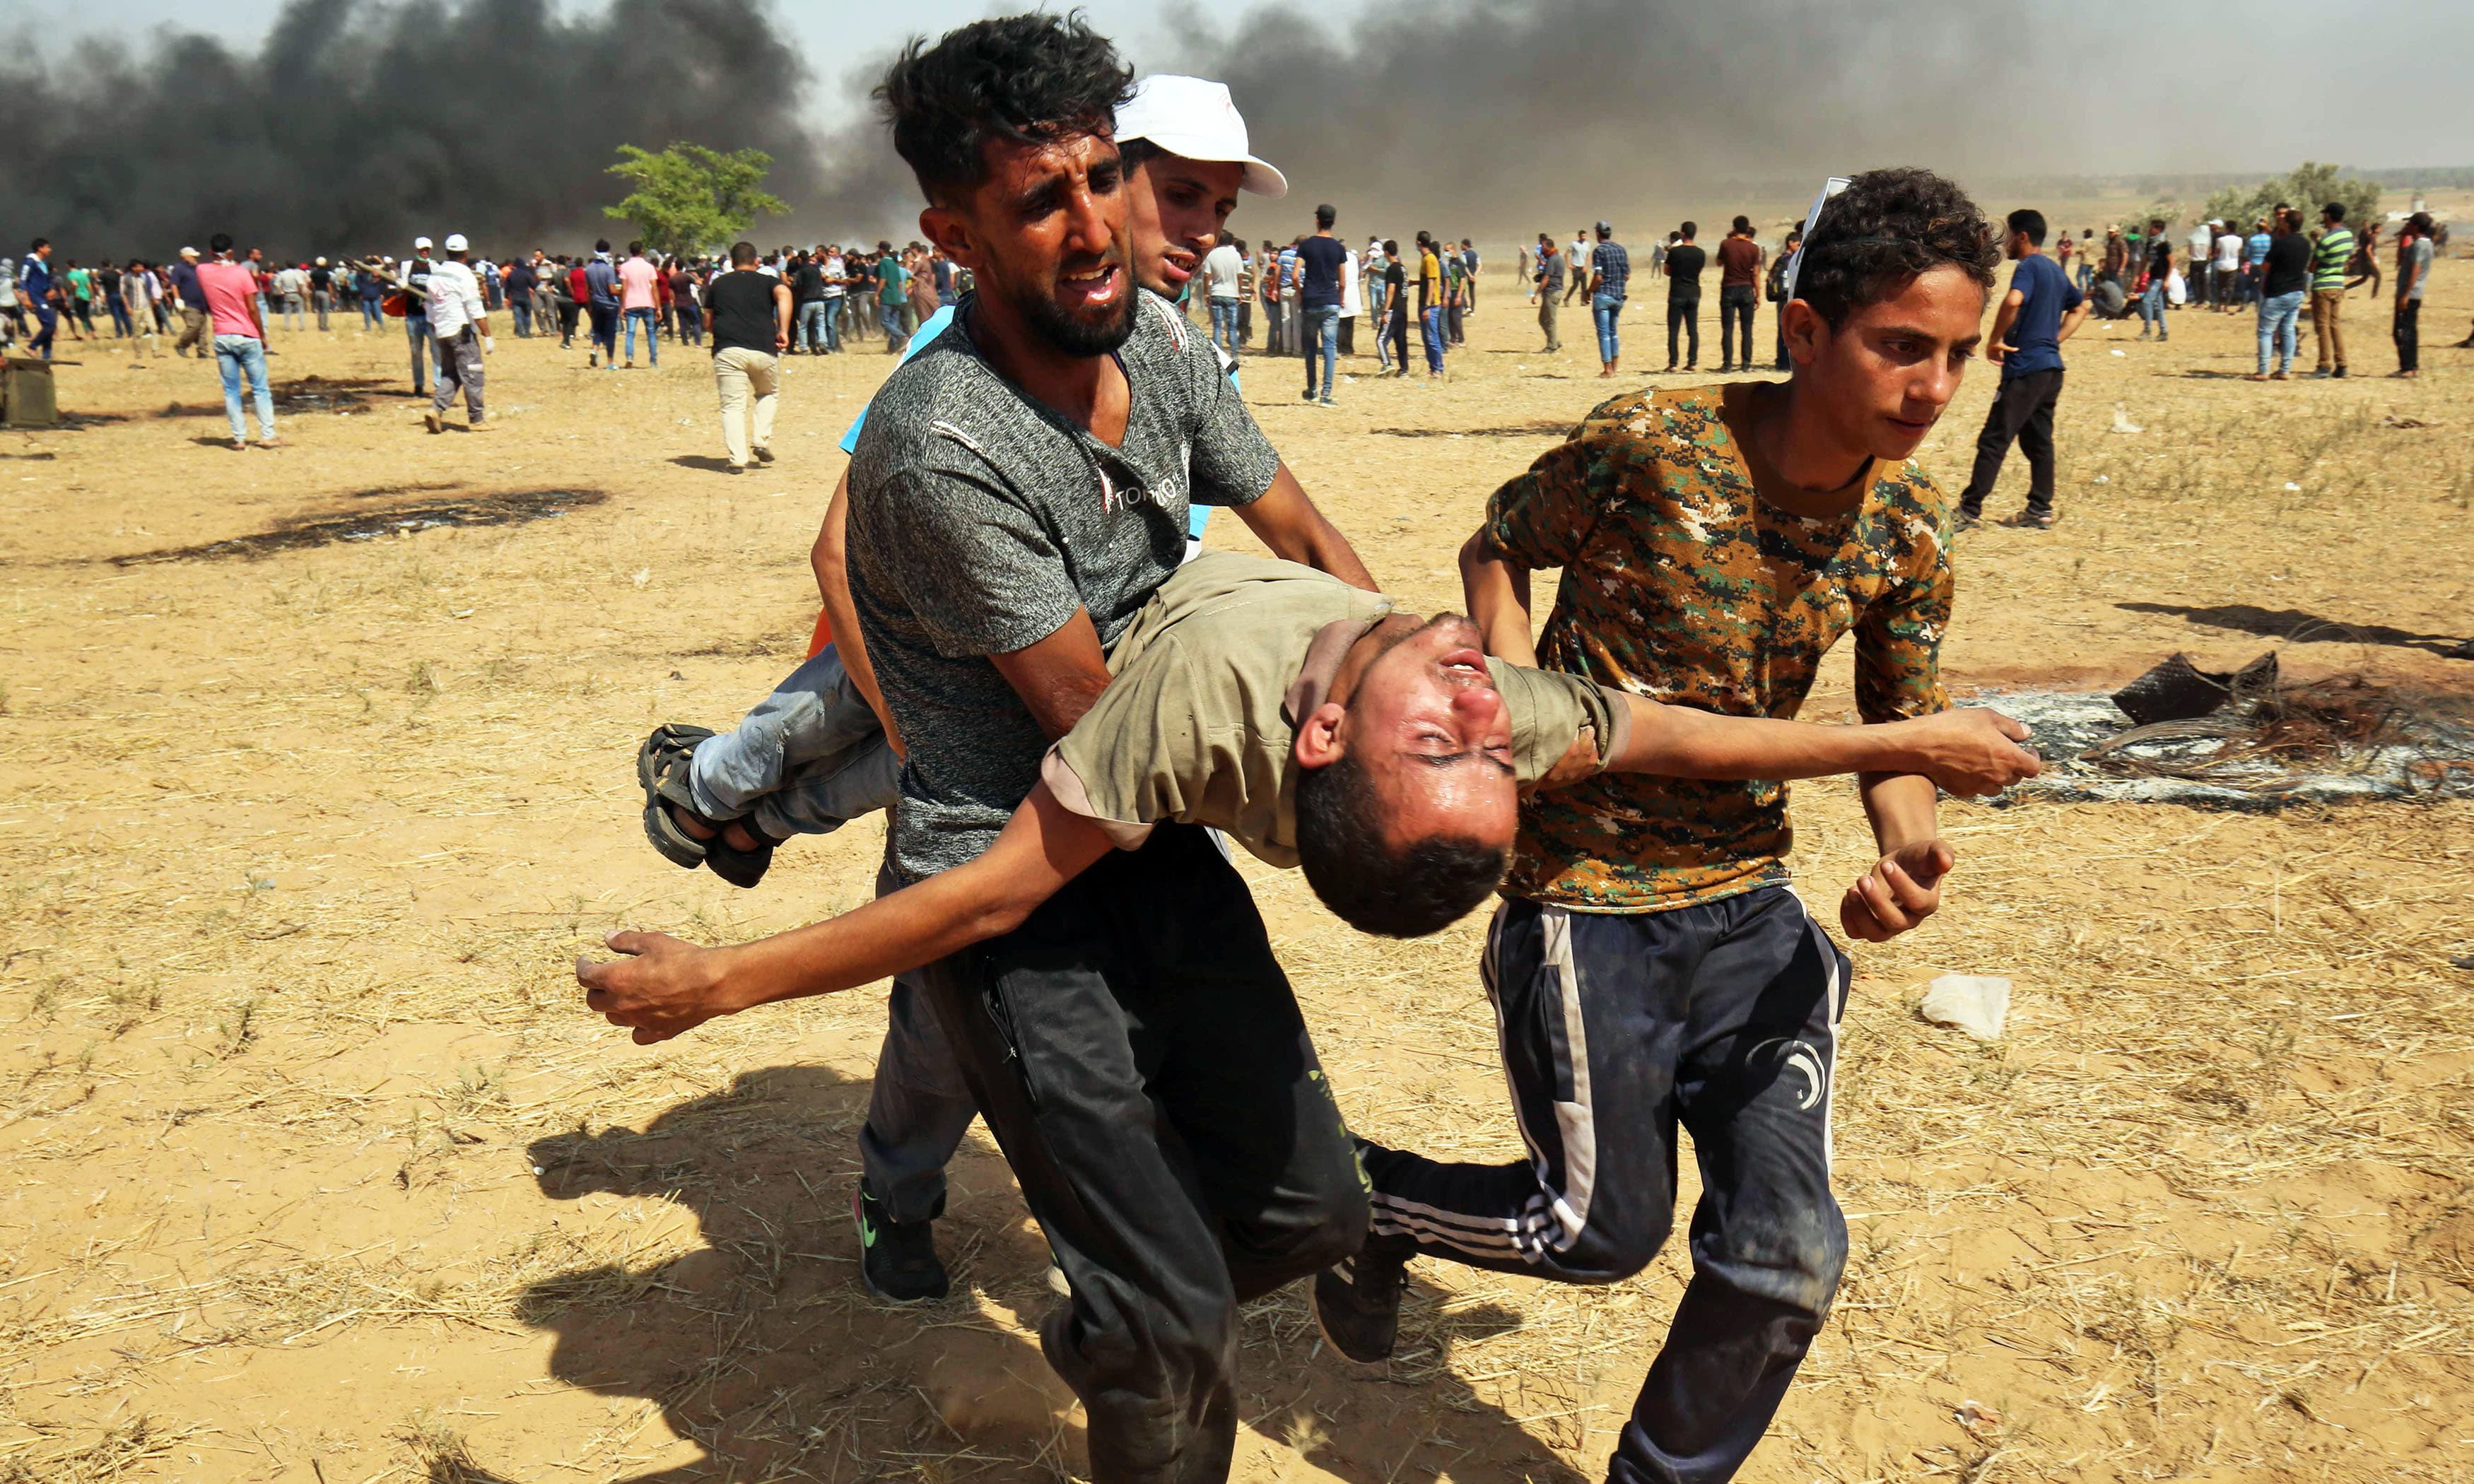 Protesters carry an injured demonstrator away from the scene of clashes with Israeli forces. —AFP